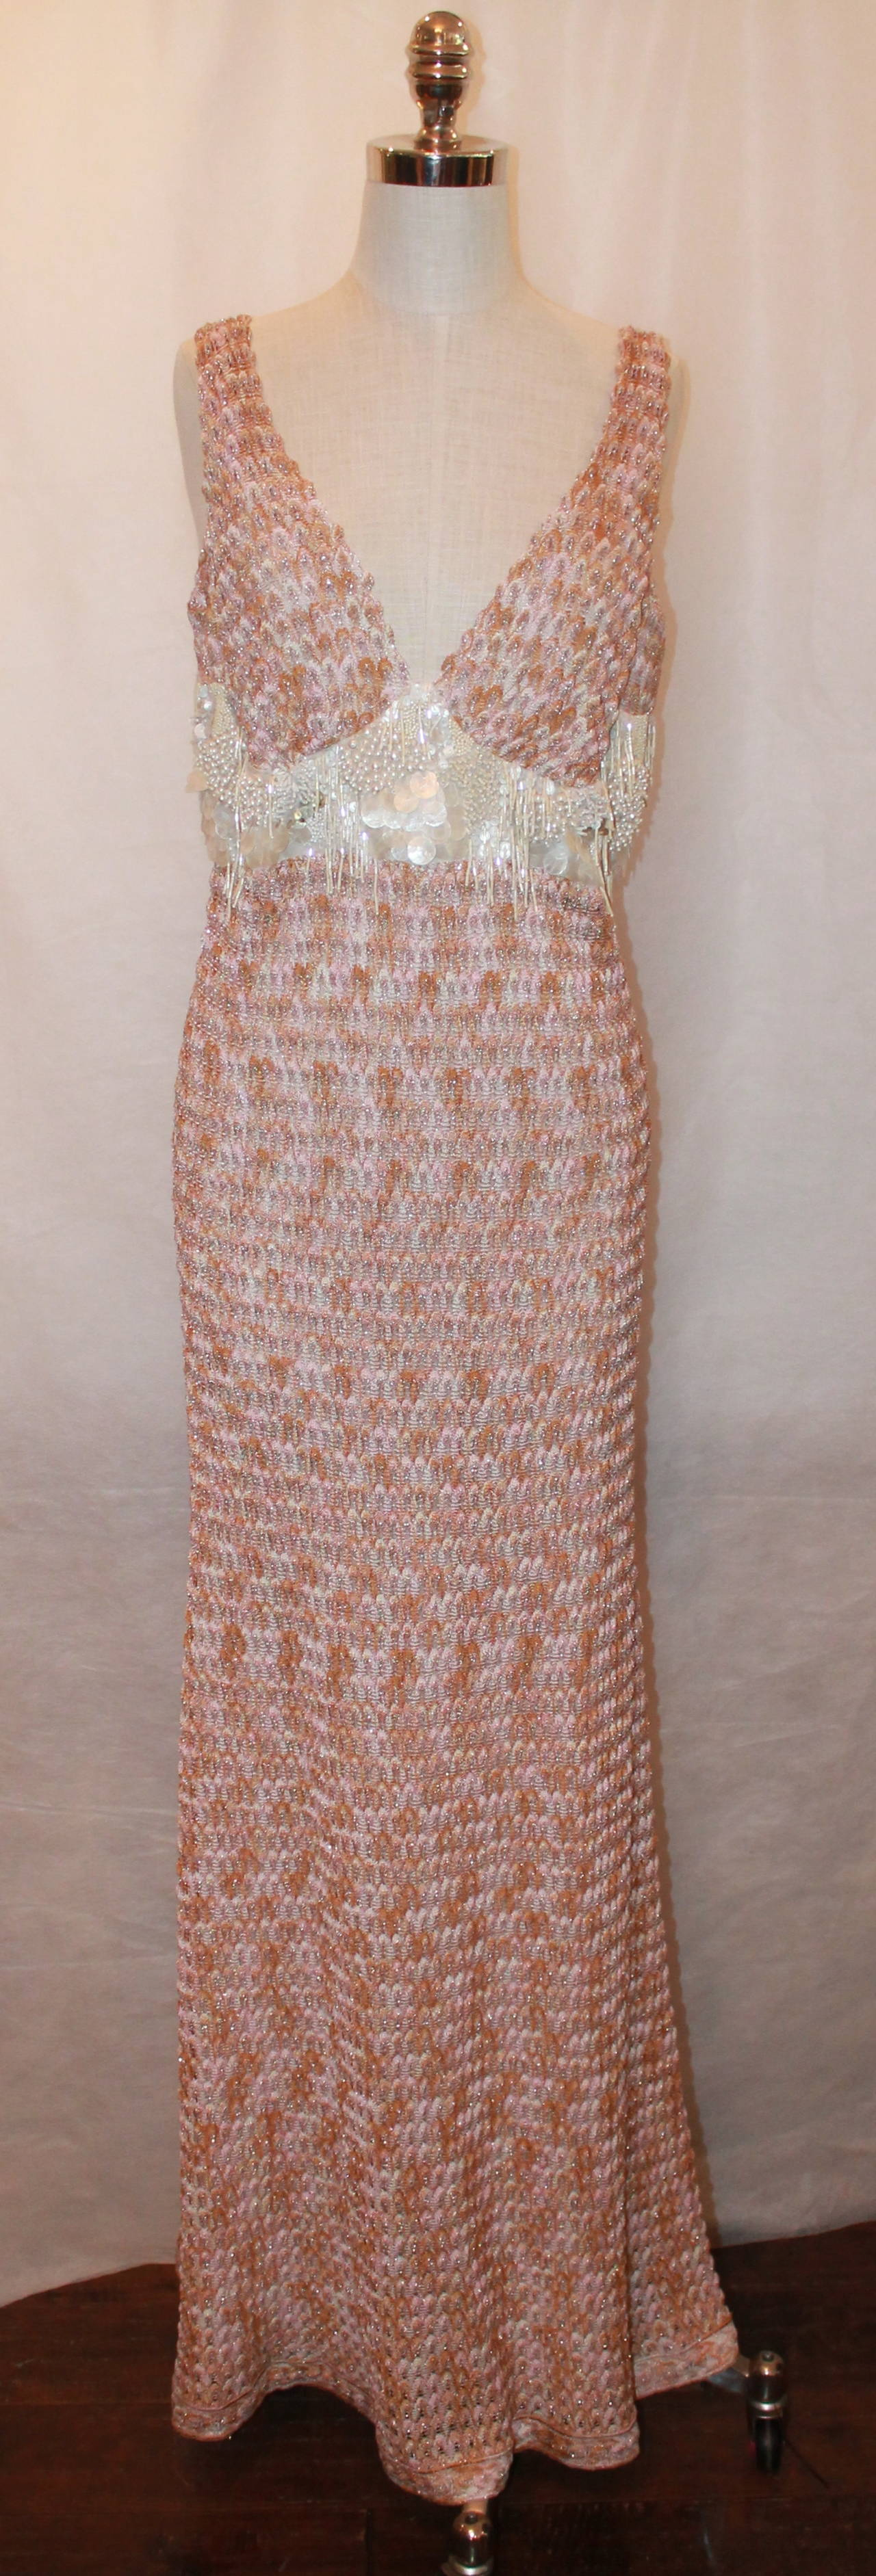 Missoni Knitted Pastel Pink Gown with Mother of Pearl Accent - 8 For ...